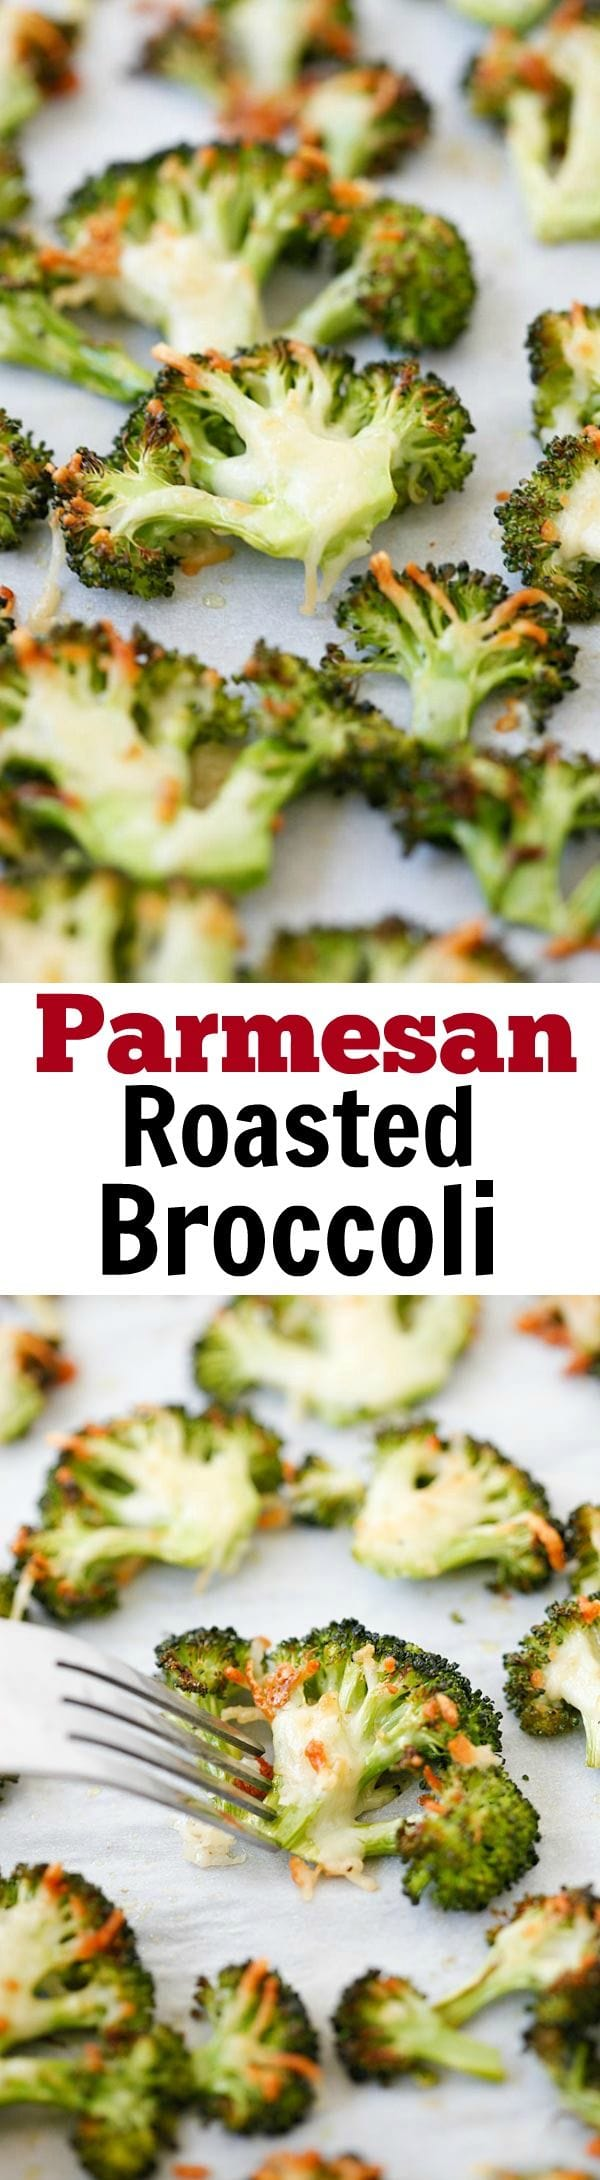 Parmesan Roasted Broccoli – easy delicious roasted broccoli recipe, with Parmesan cheese. 5 mins prep and 20 mins to dinner table | rasamalaysia.com